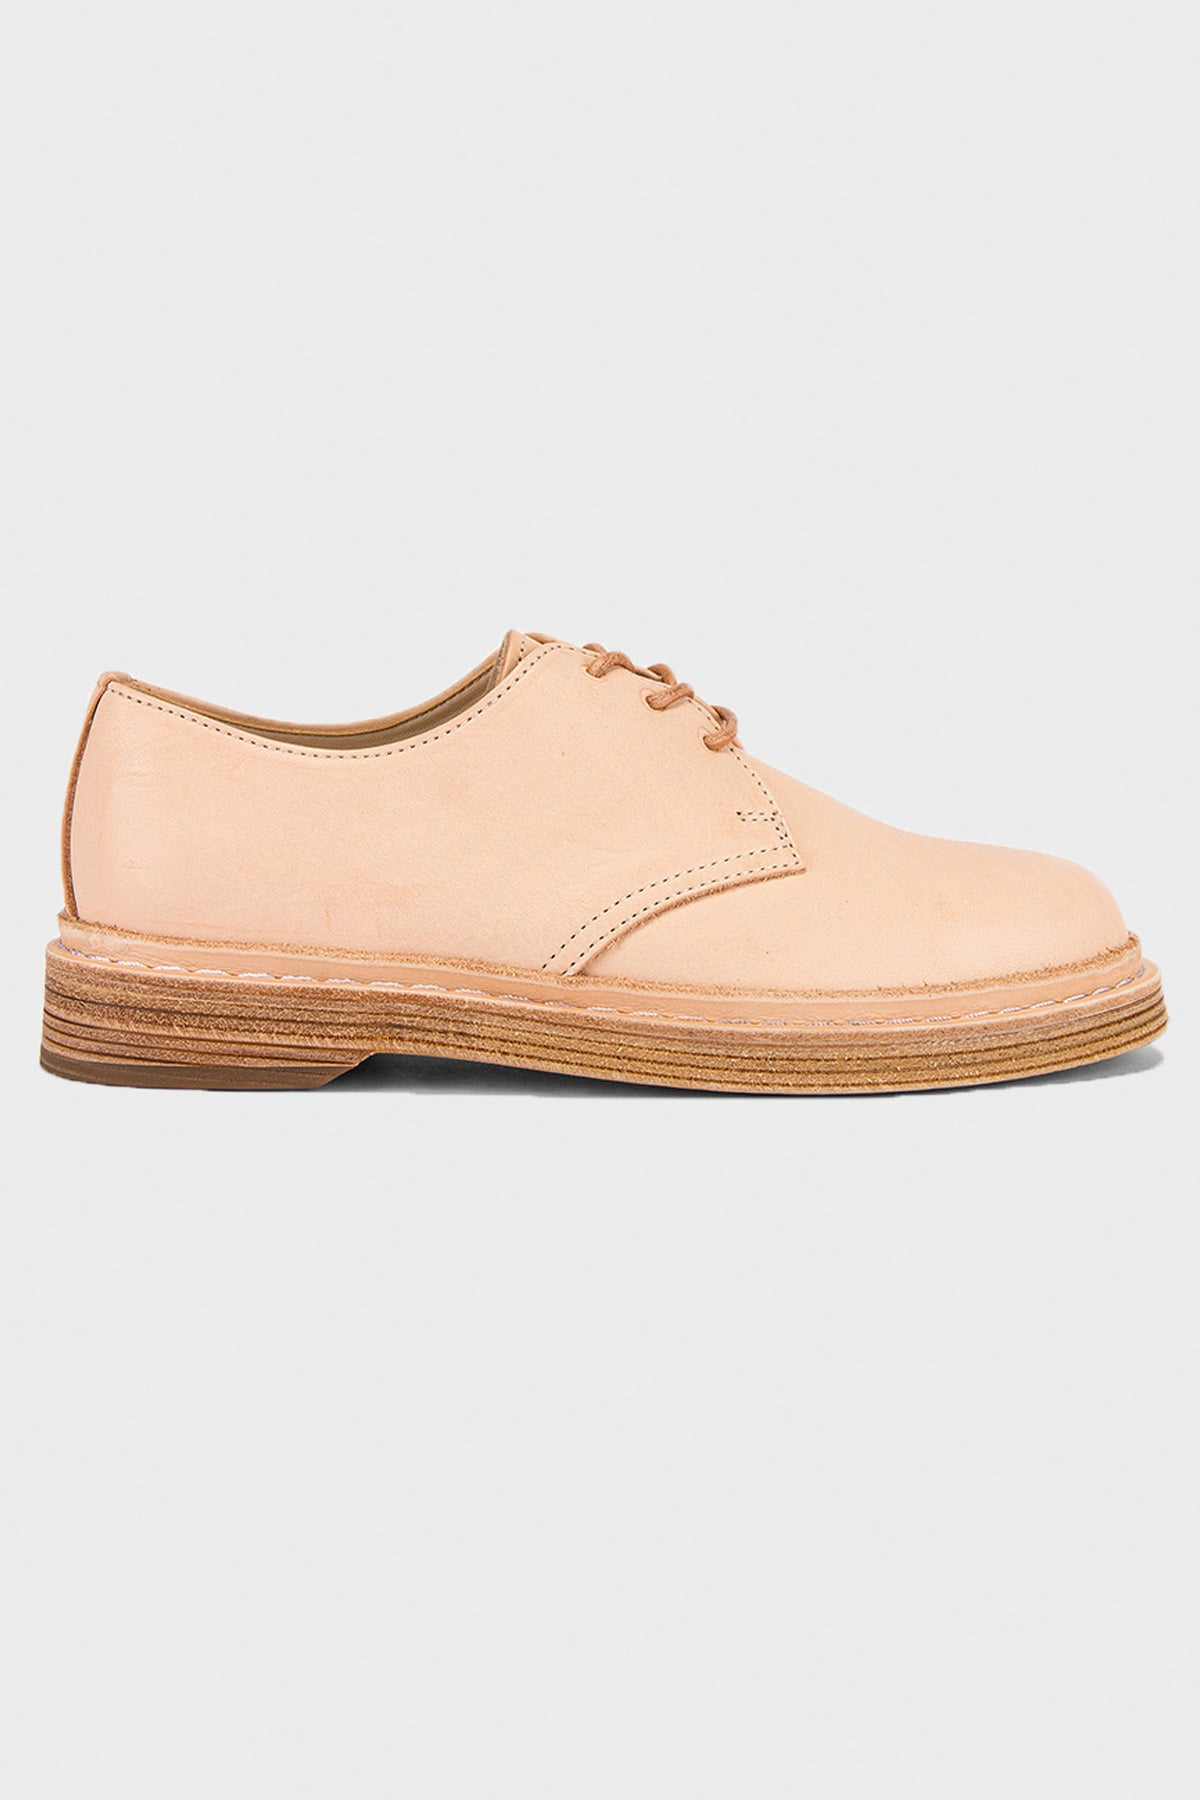 Hender Scheme - MIP-21 - Natural - Canoe Club